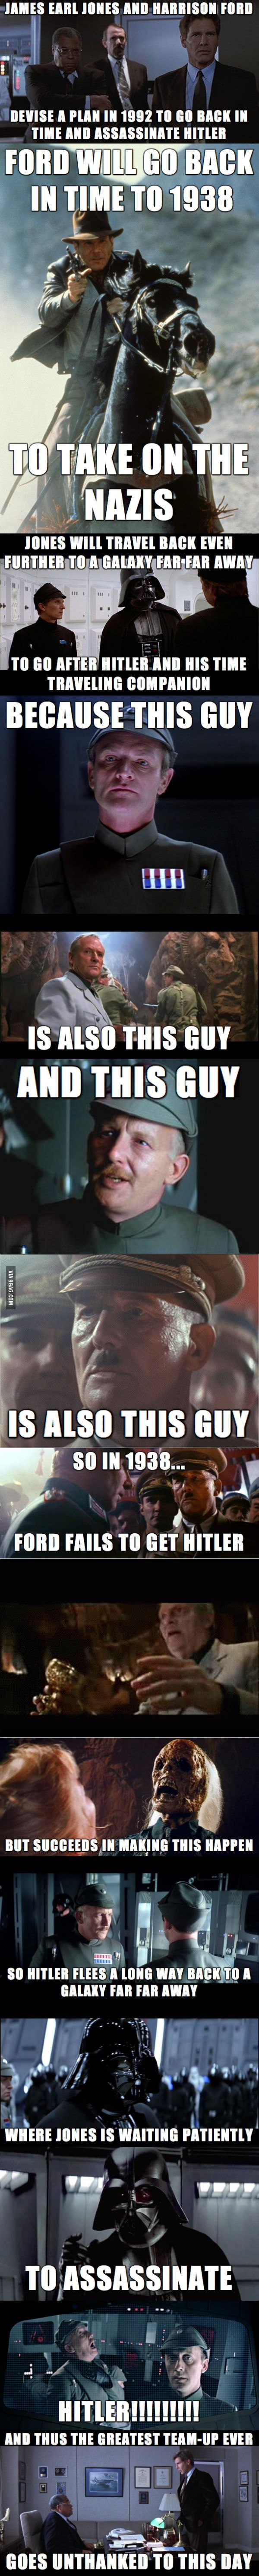 Unknown, successful plot to assassinate Hitler! This is amazing and hilarious! And everyone thought Vader was bad.